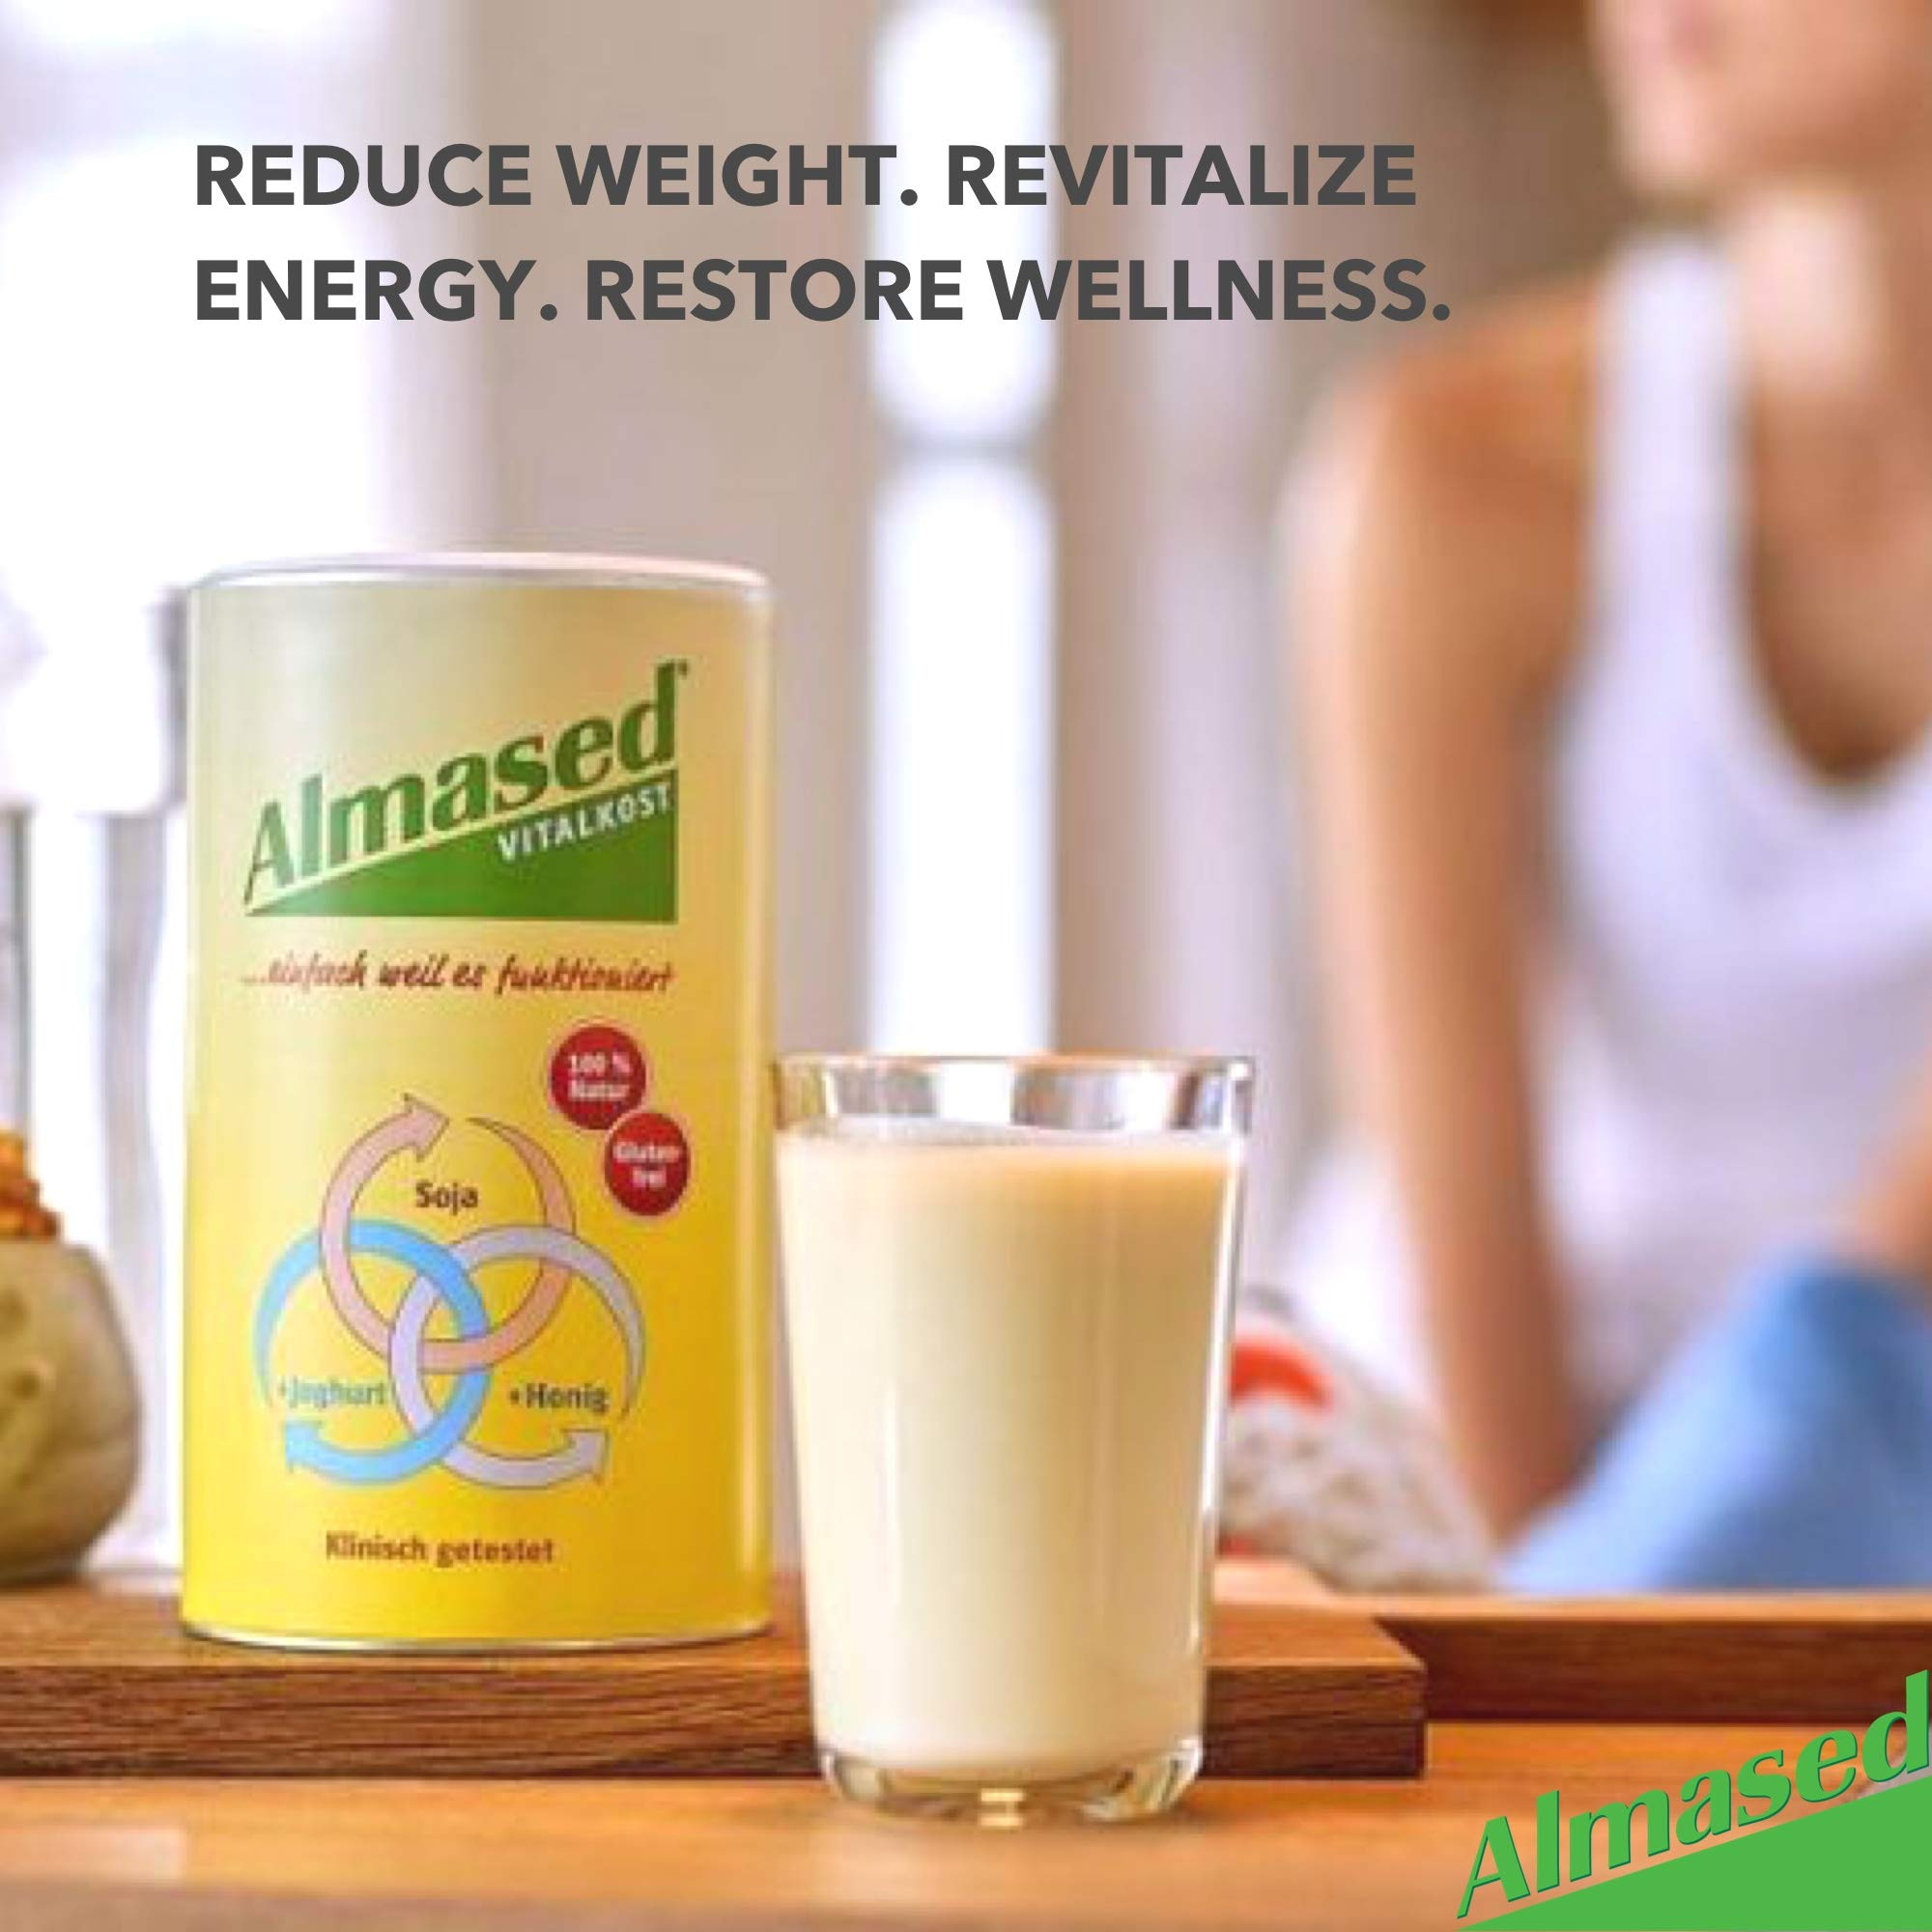 Almased Meal Replacement Shake (3 Pack) with Bonus Bamboo Spoon - 17.6 oz Powder - High Protein Weight Loss Drink, Fat Metabolism Booster - Vegetarian, Gluten Free - 30 Total Servings by Almased (Image #9)